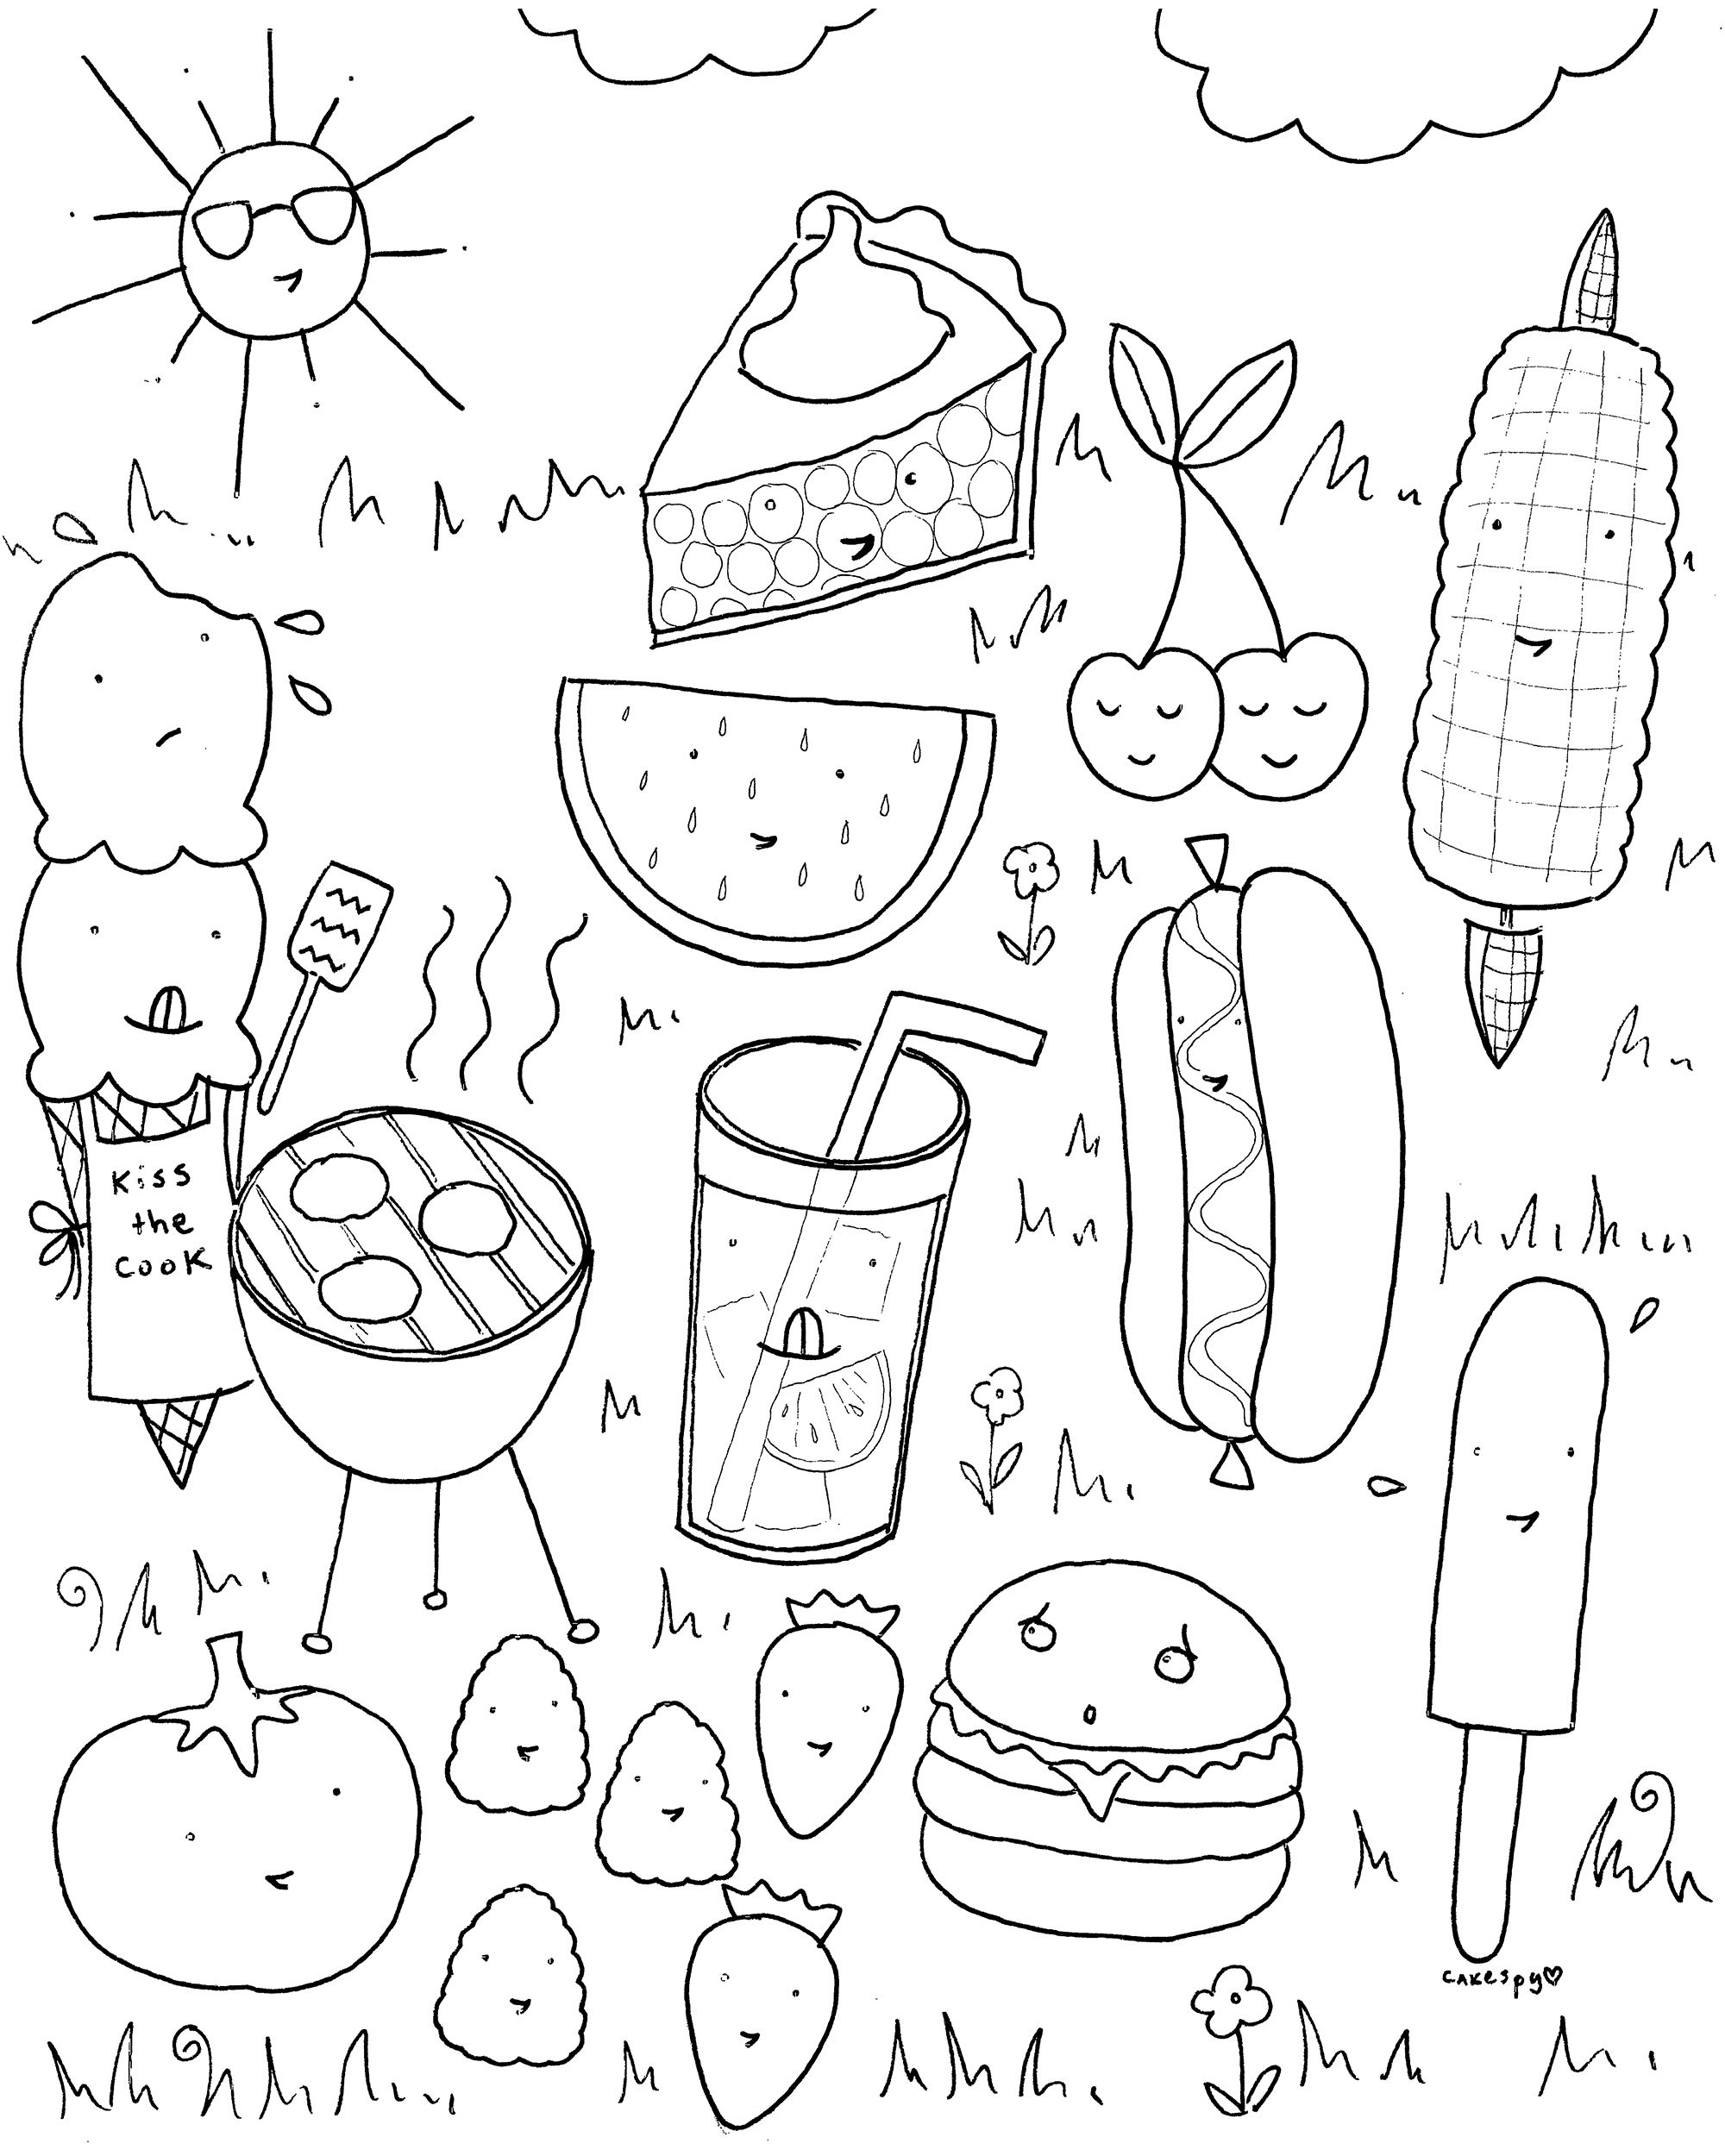 Free Downloadable Summer Fun Coloring Book Pages Ideen Fur Kinder